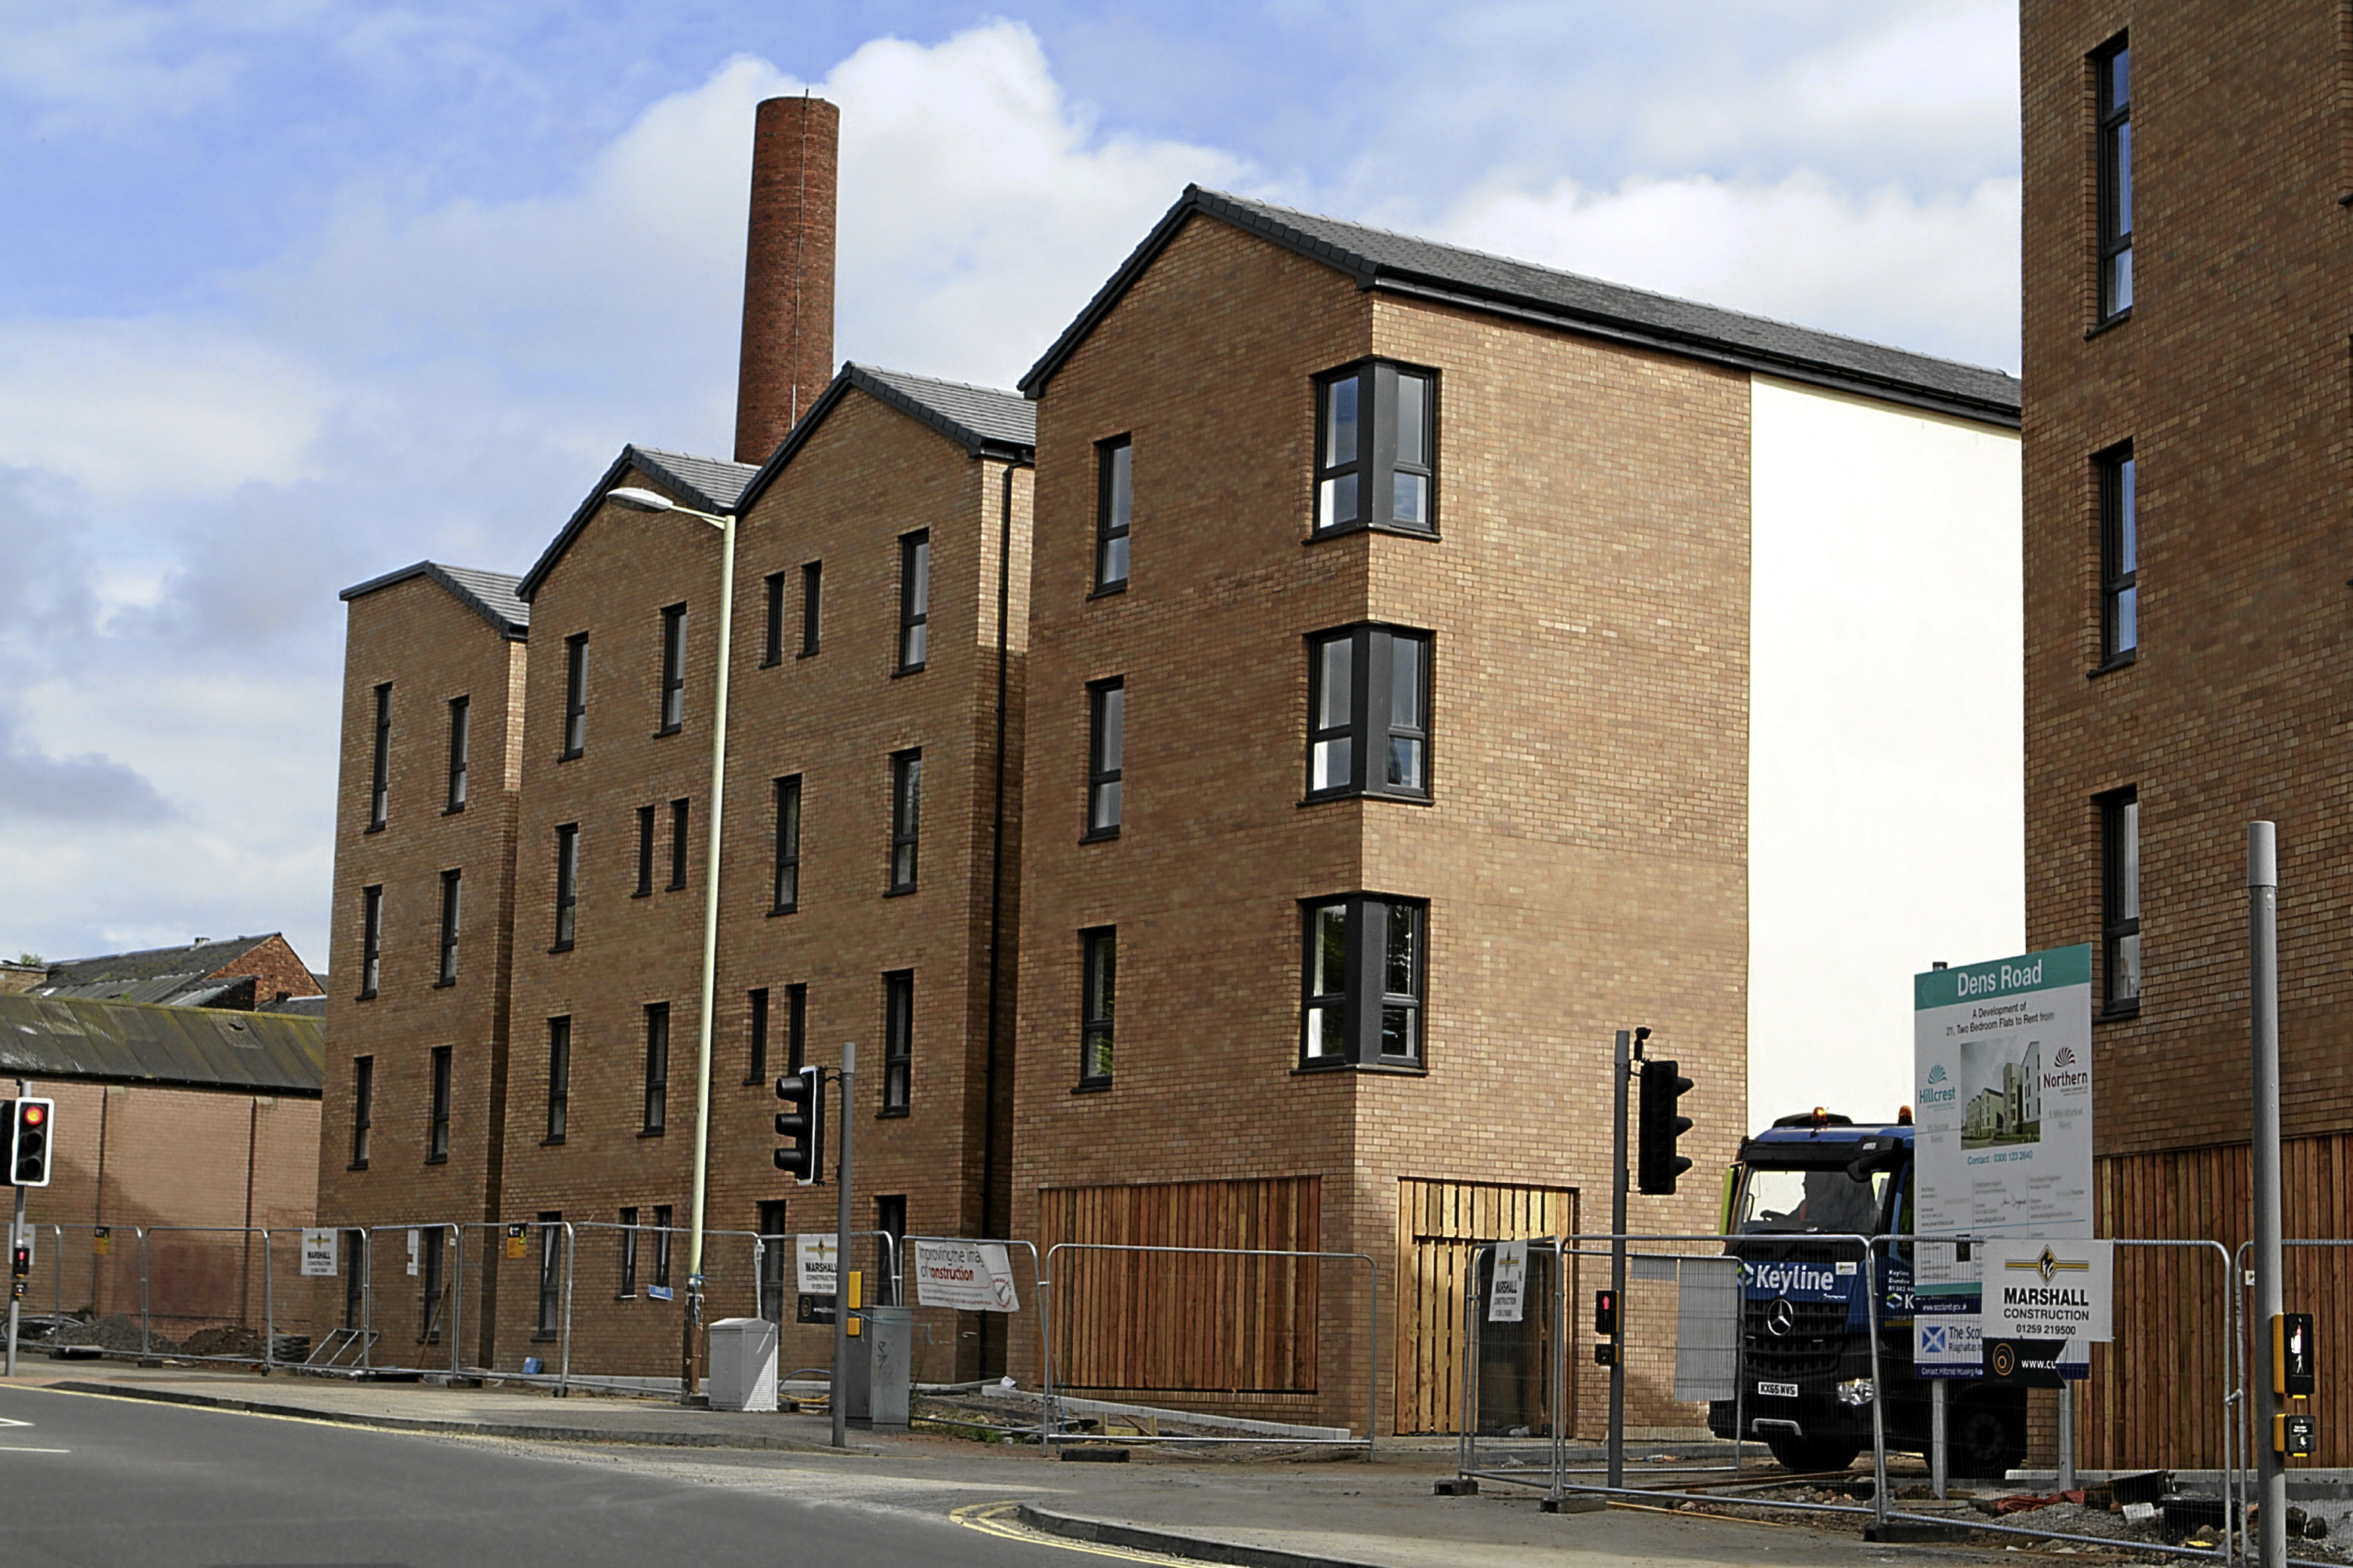 The new flats that have been built on the former Dens Metals site in Dens Road, Dundee, where tenants will benefit from free internet access.